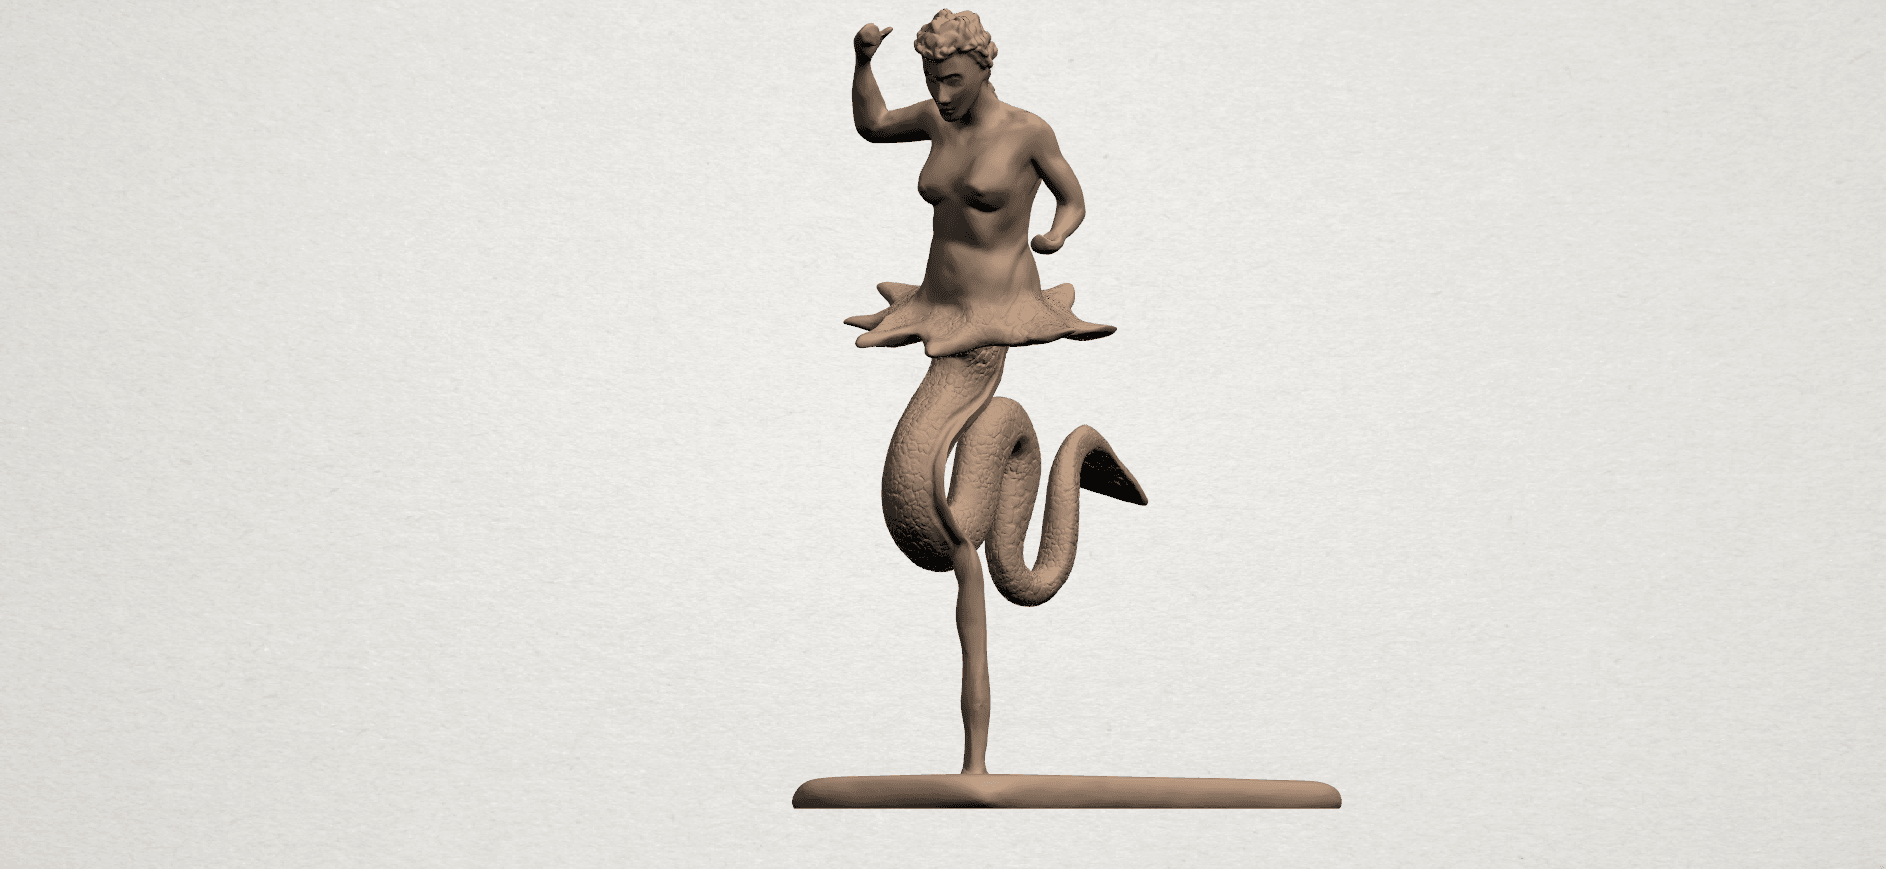 Ophidian A04.png Download free STL file Ophidian • 3D printing template, GeorgesNikkei